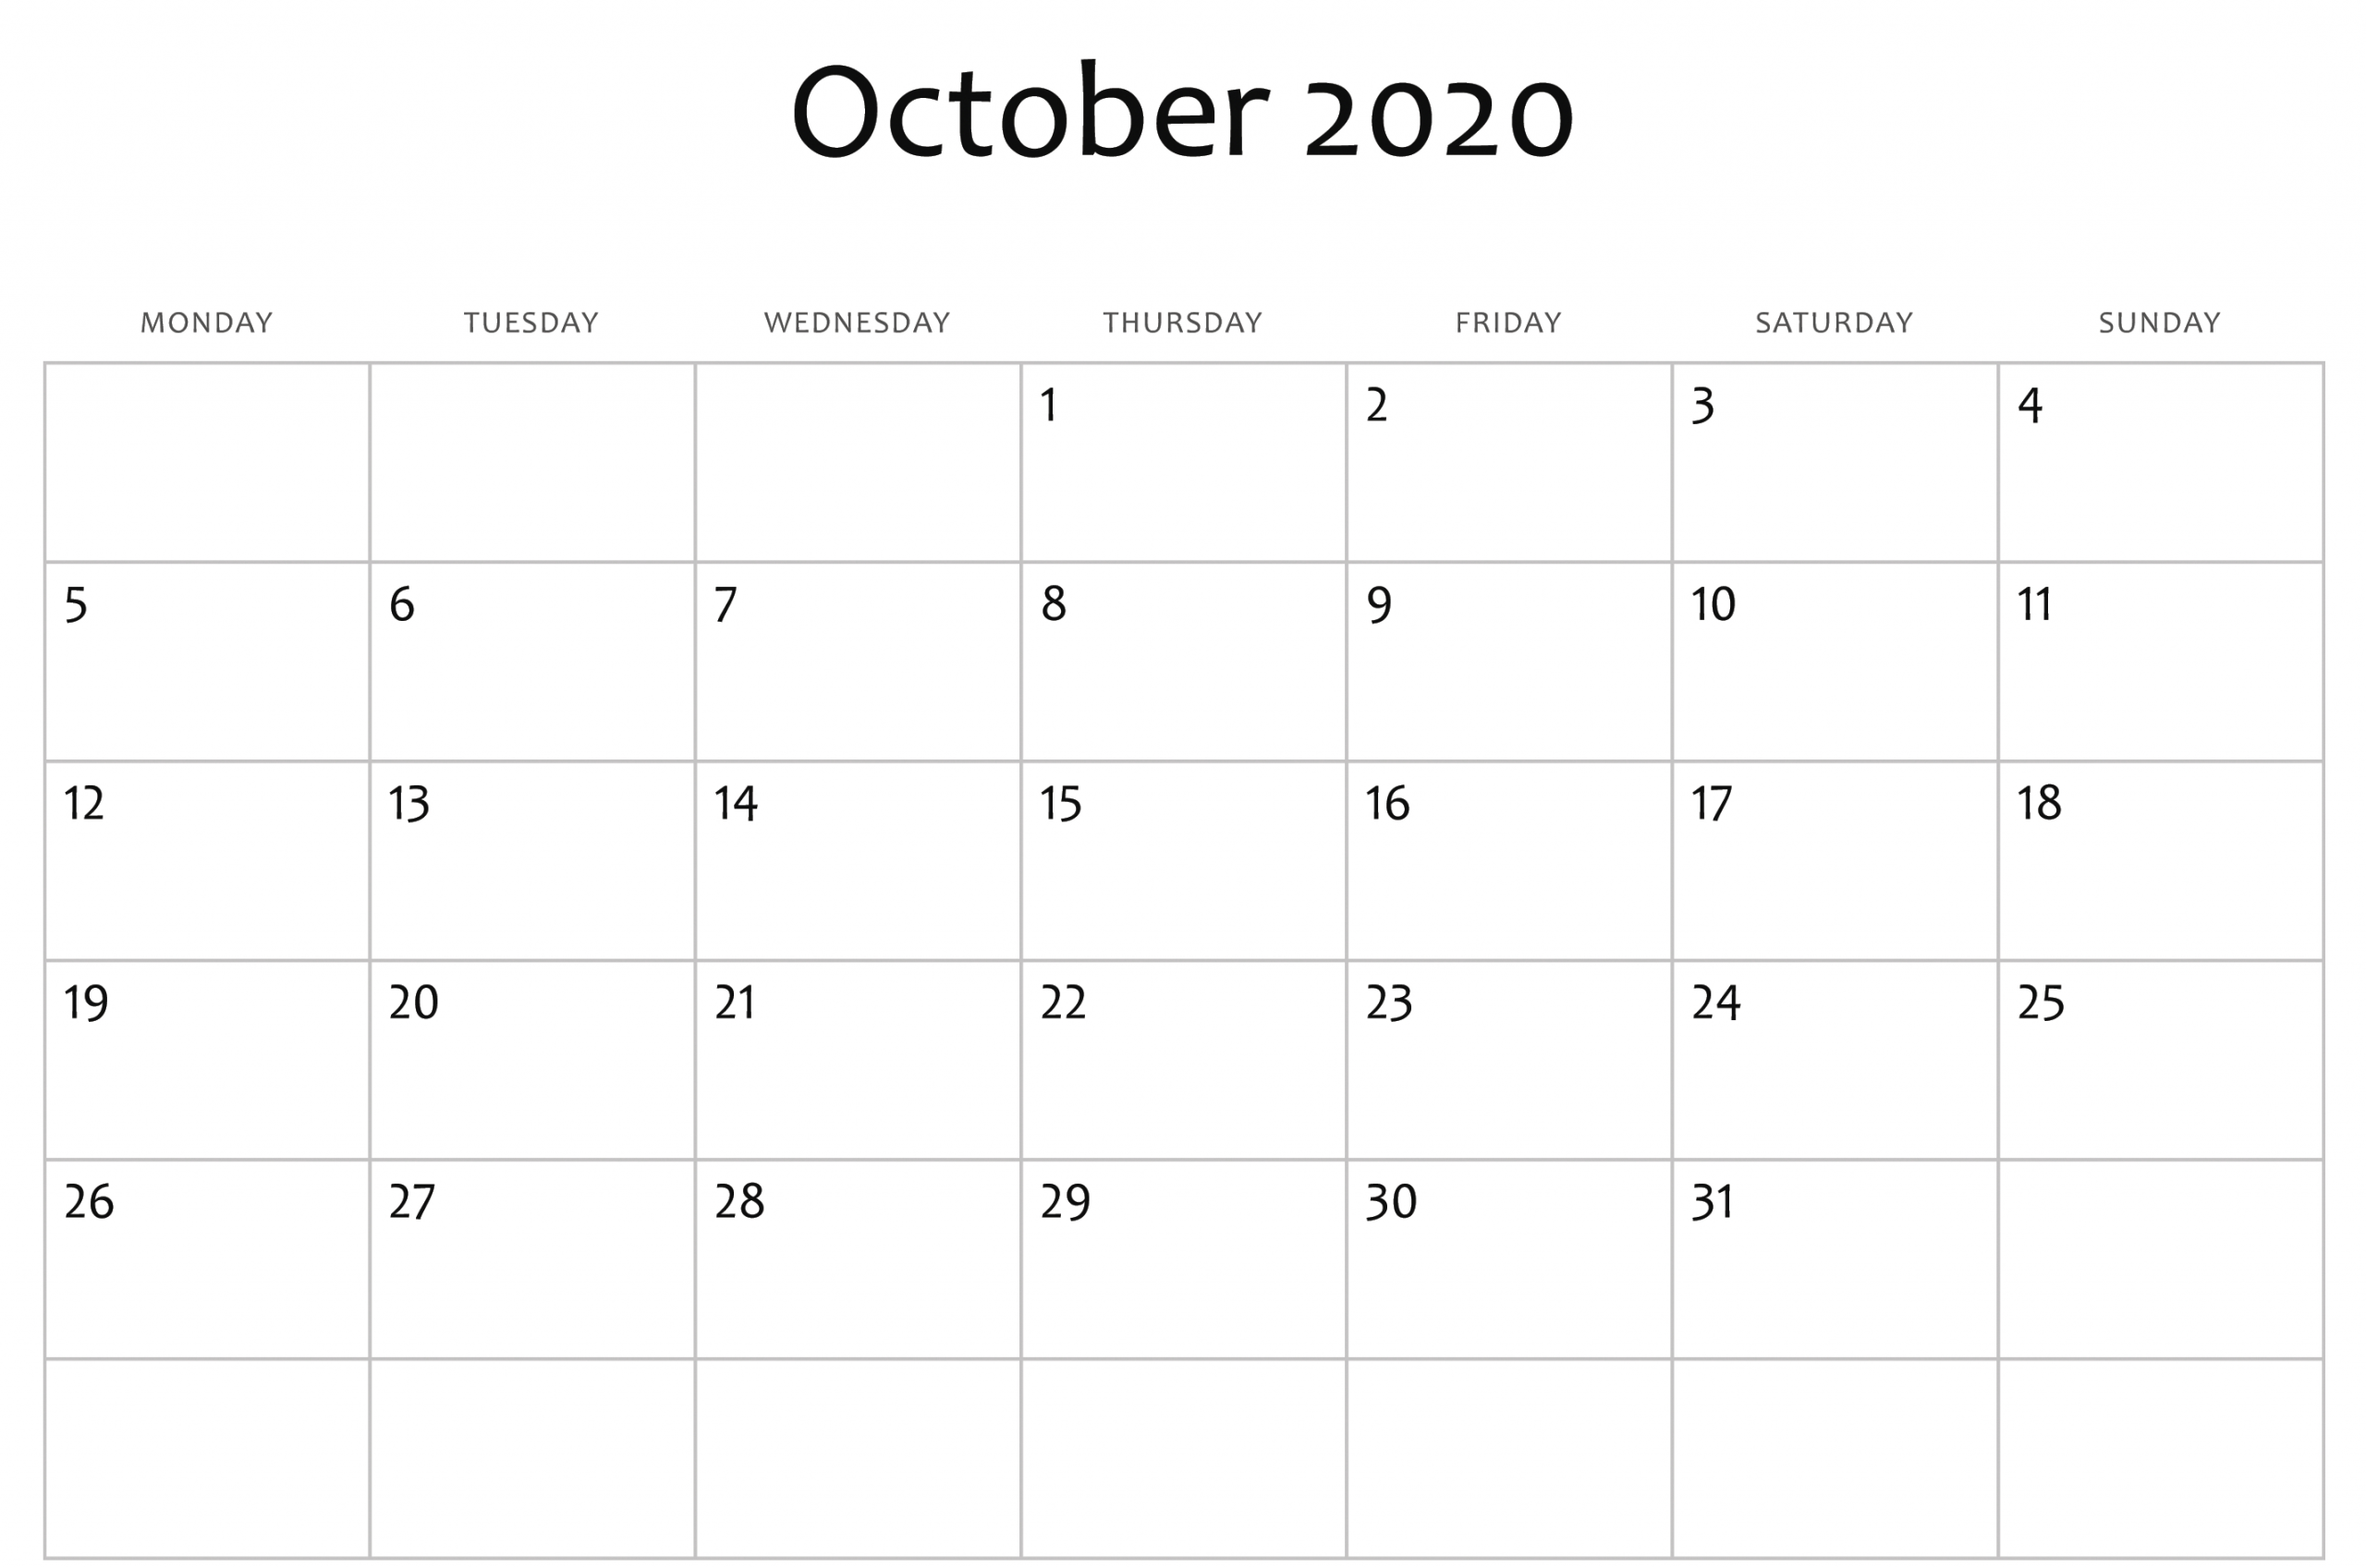 October 2020 Calendar Pdf, Word, Excel Template 3 | October